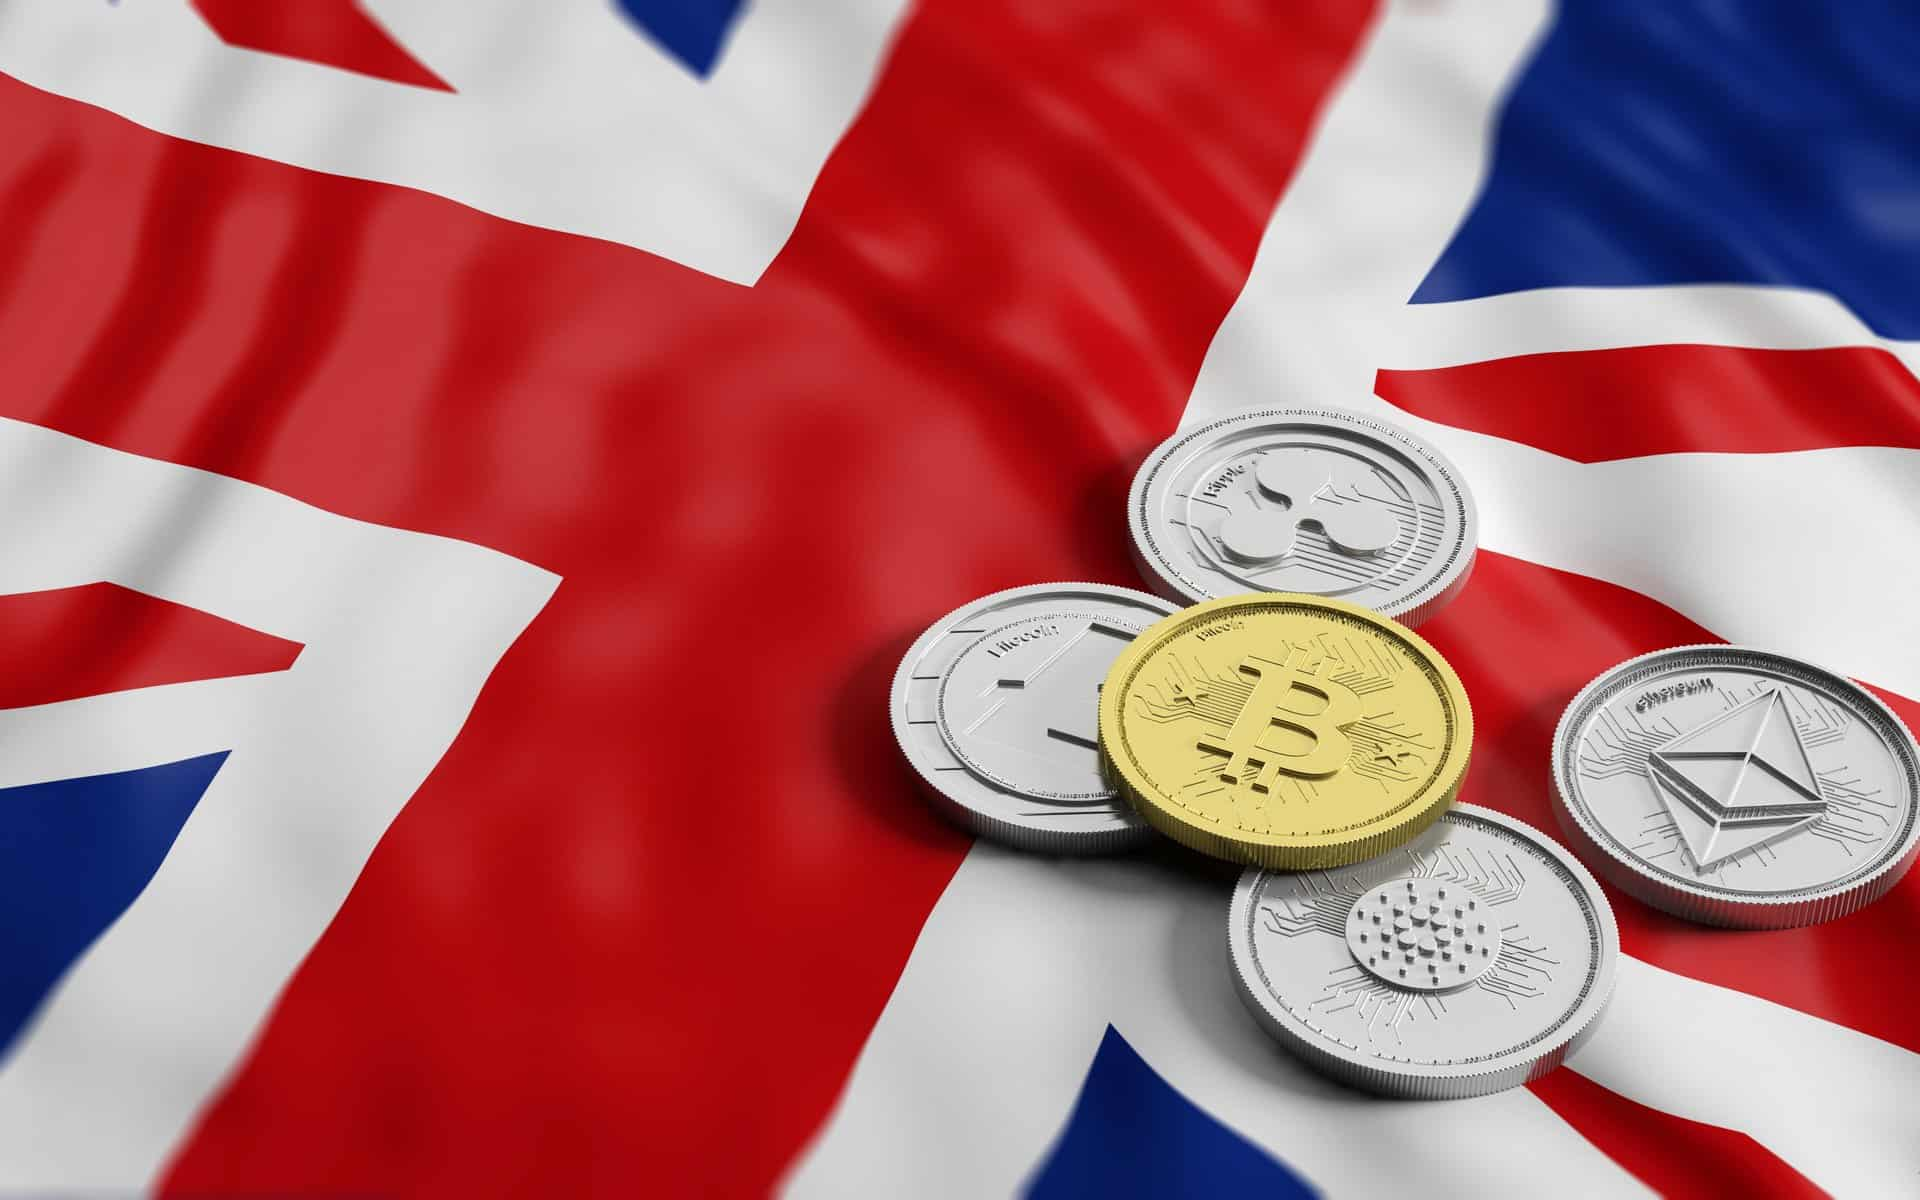 What is Britcoin? The UK central bank digital currency CBDC